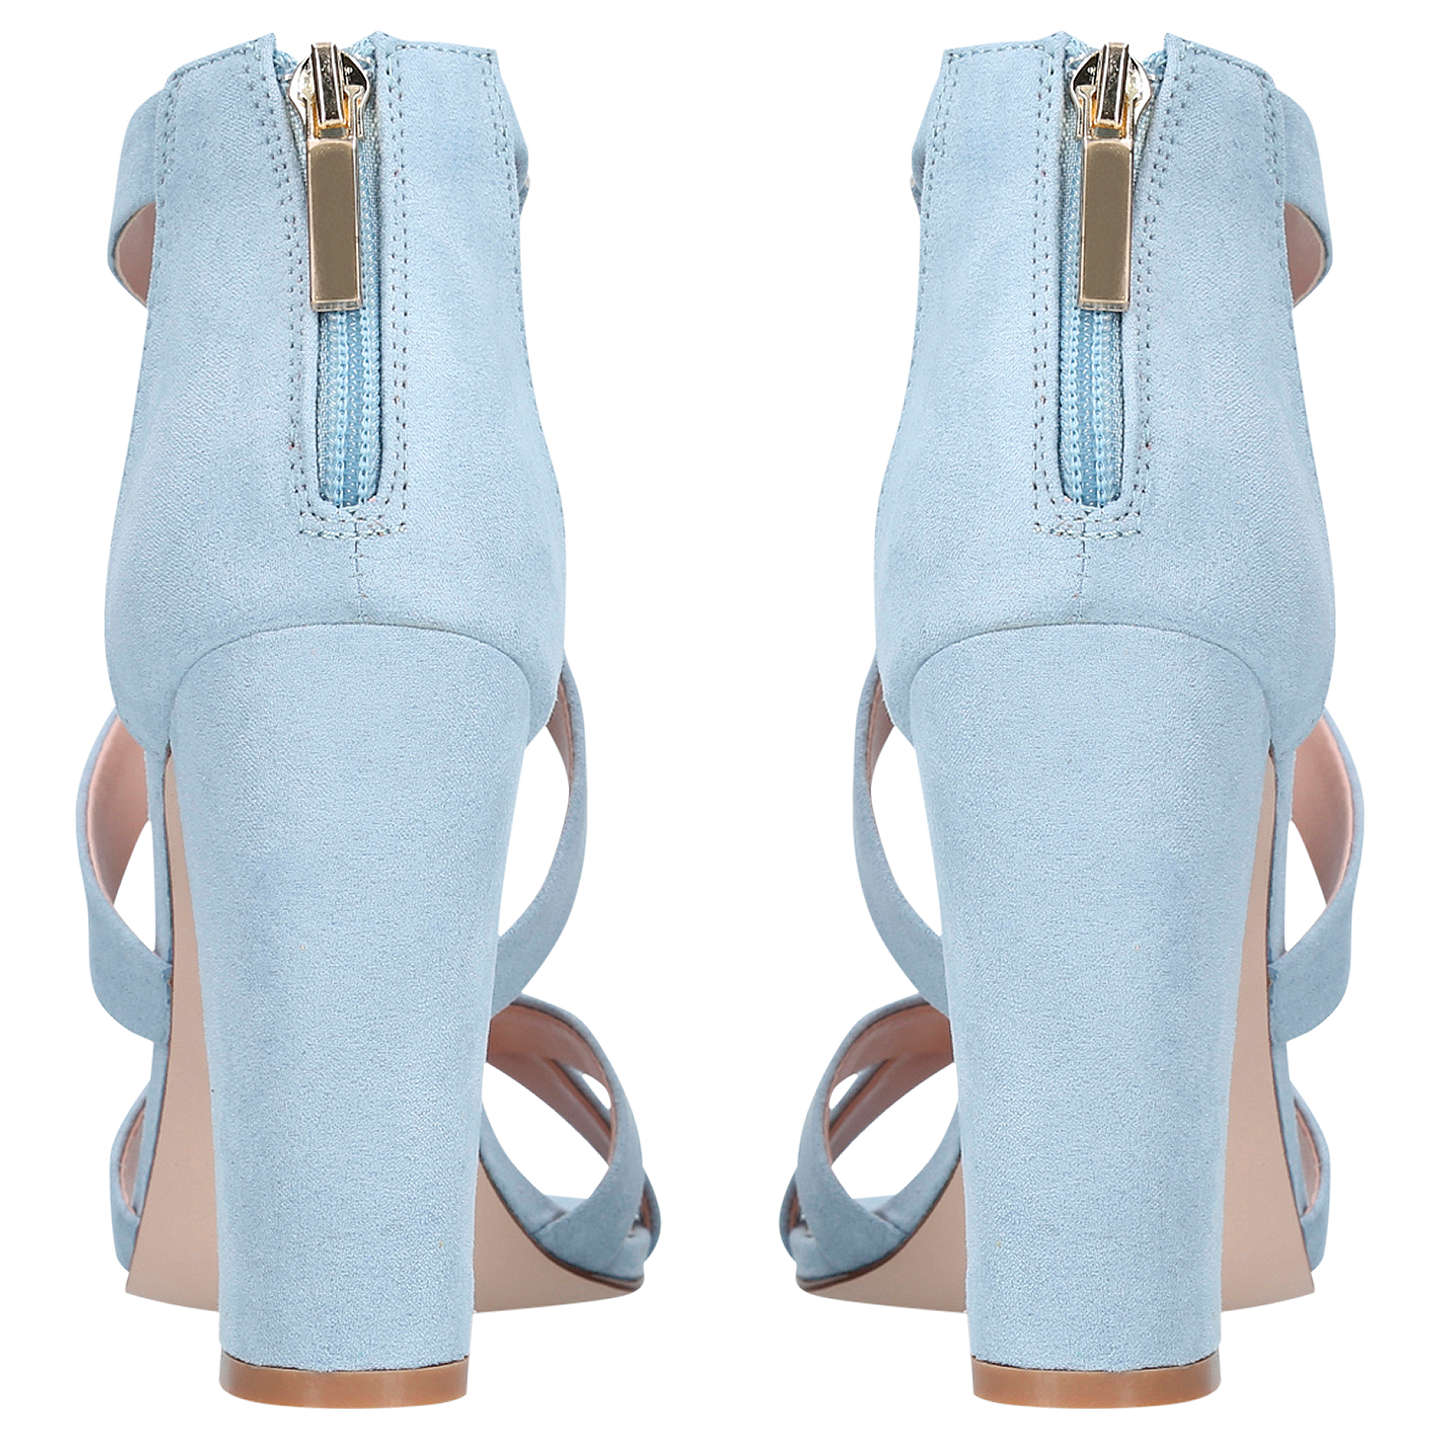 BuyMiss KG Faun Cross Strap Block Heeled Sandals, Blue Suedette, 5 Online at johnlewis.com